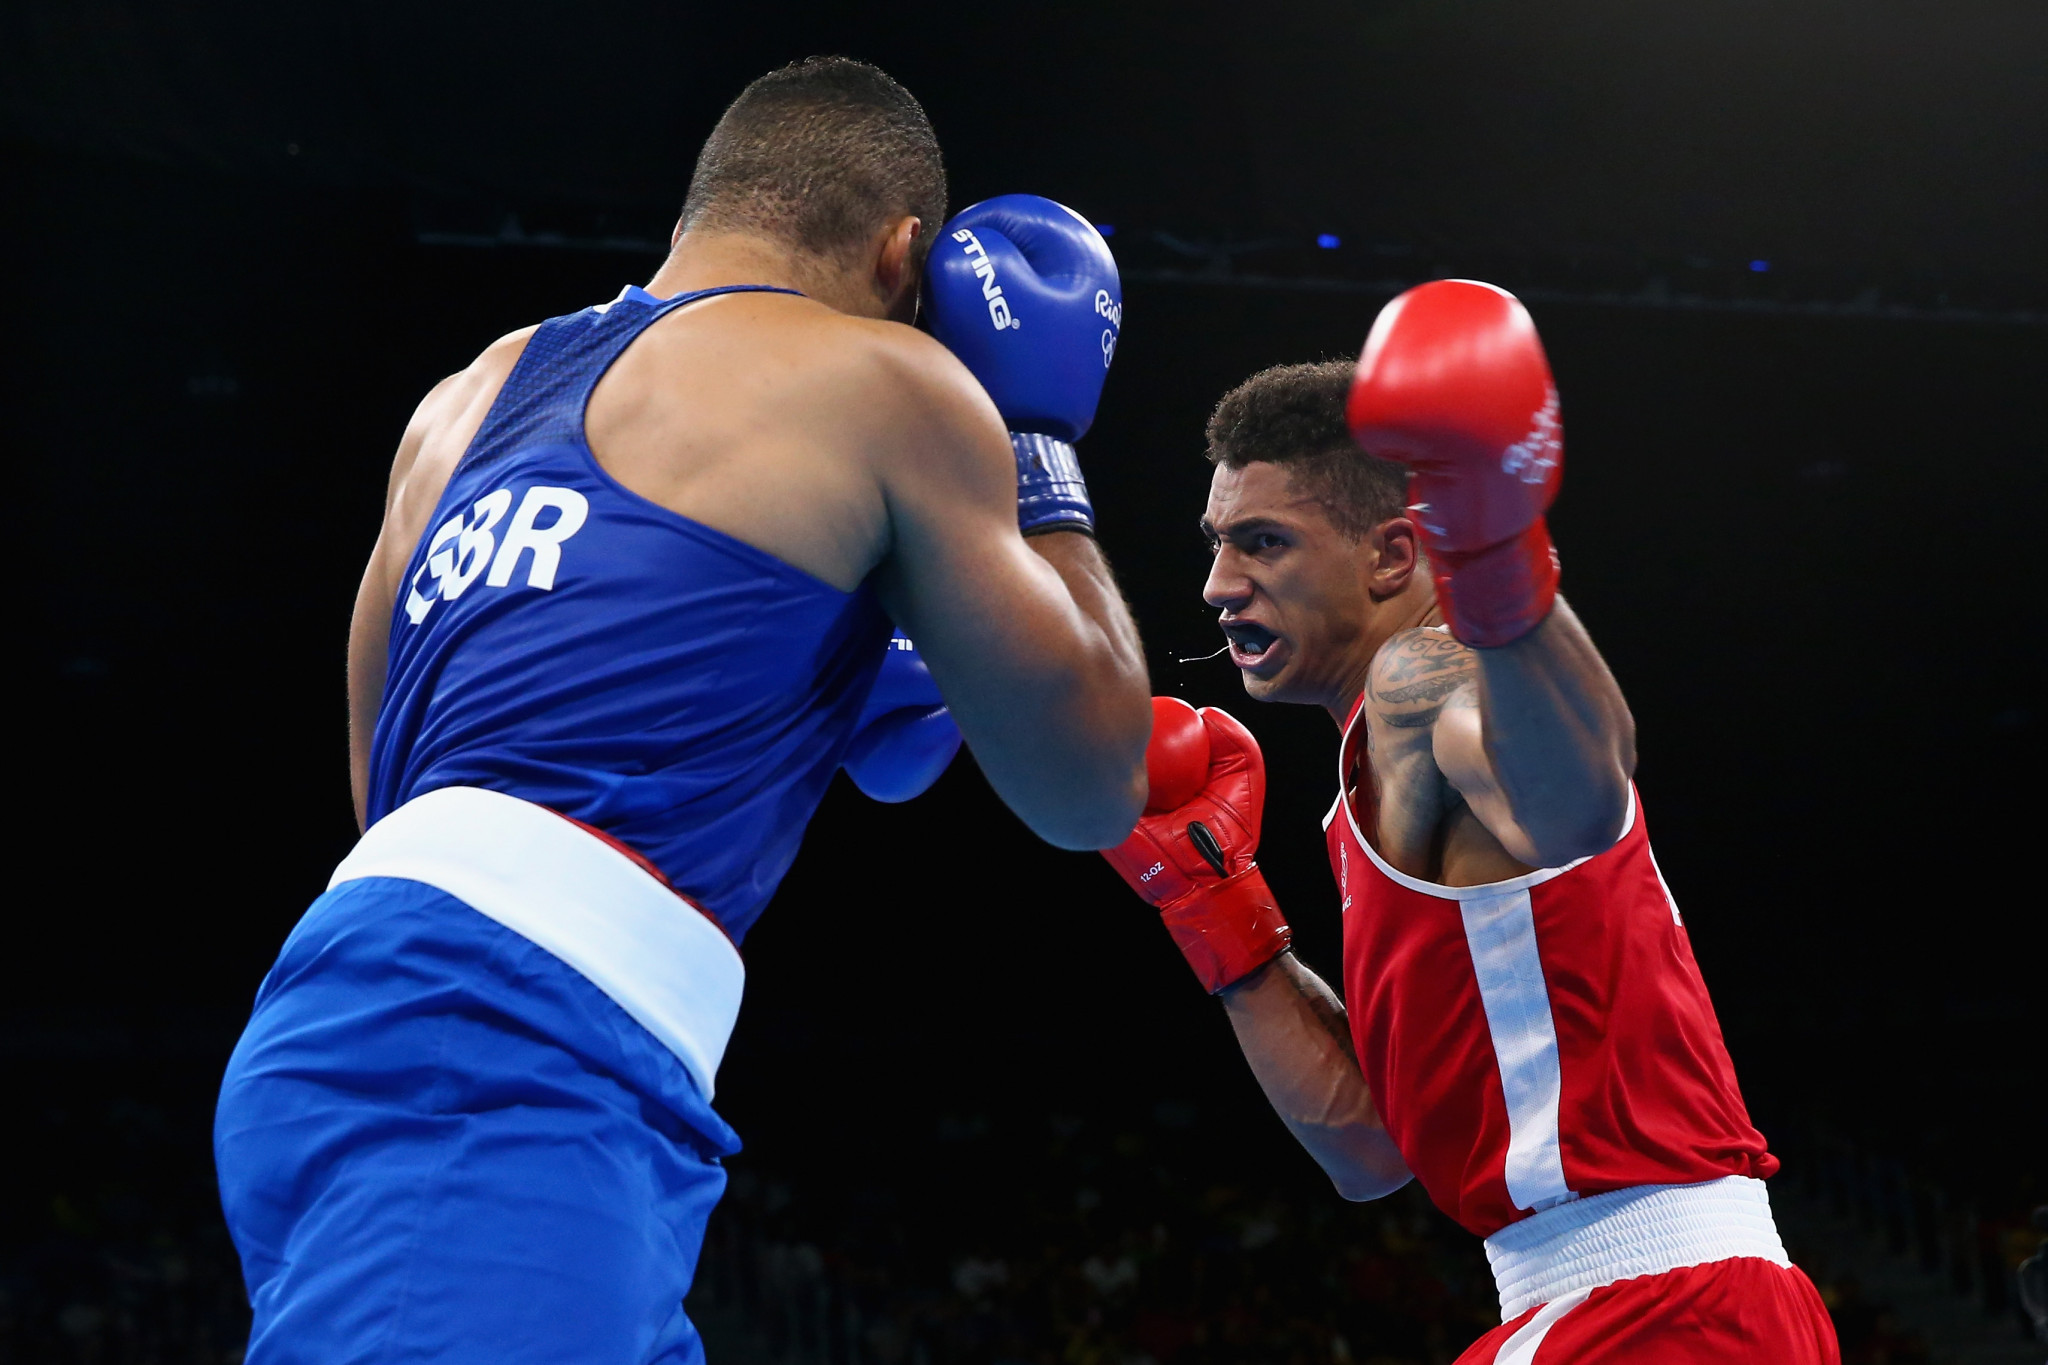 Continuing uncertainty about who is going to run the boxing tournament at Tokyo 2020 showed